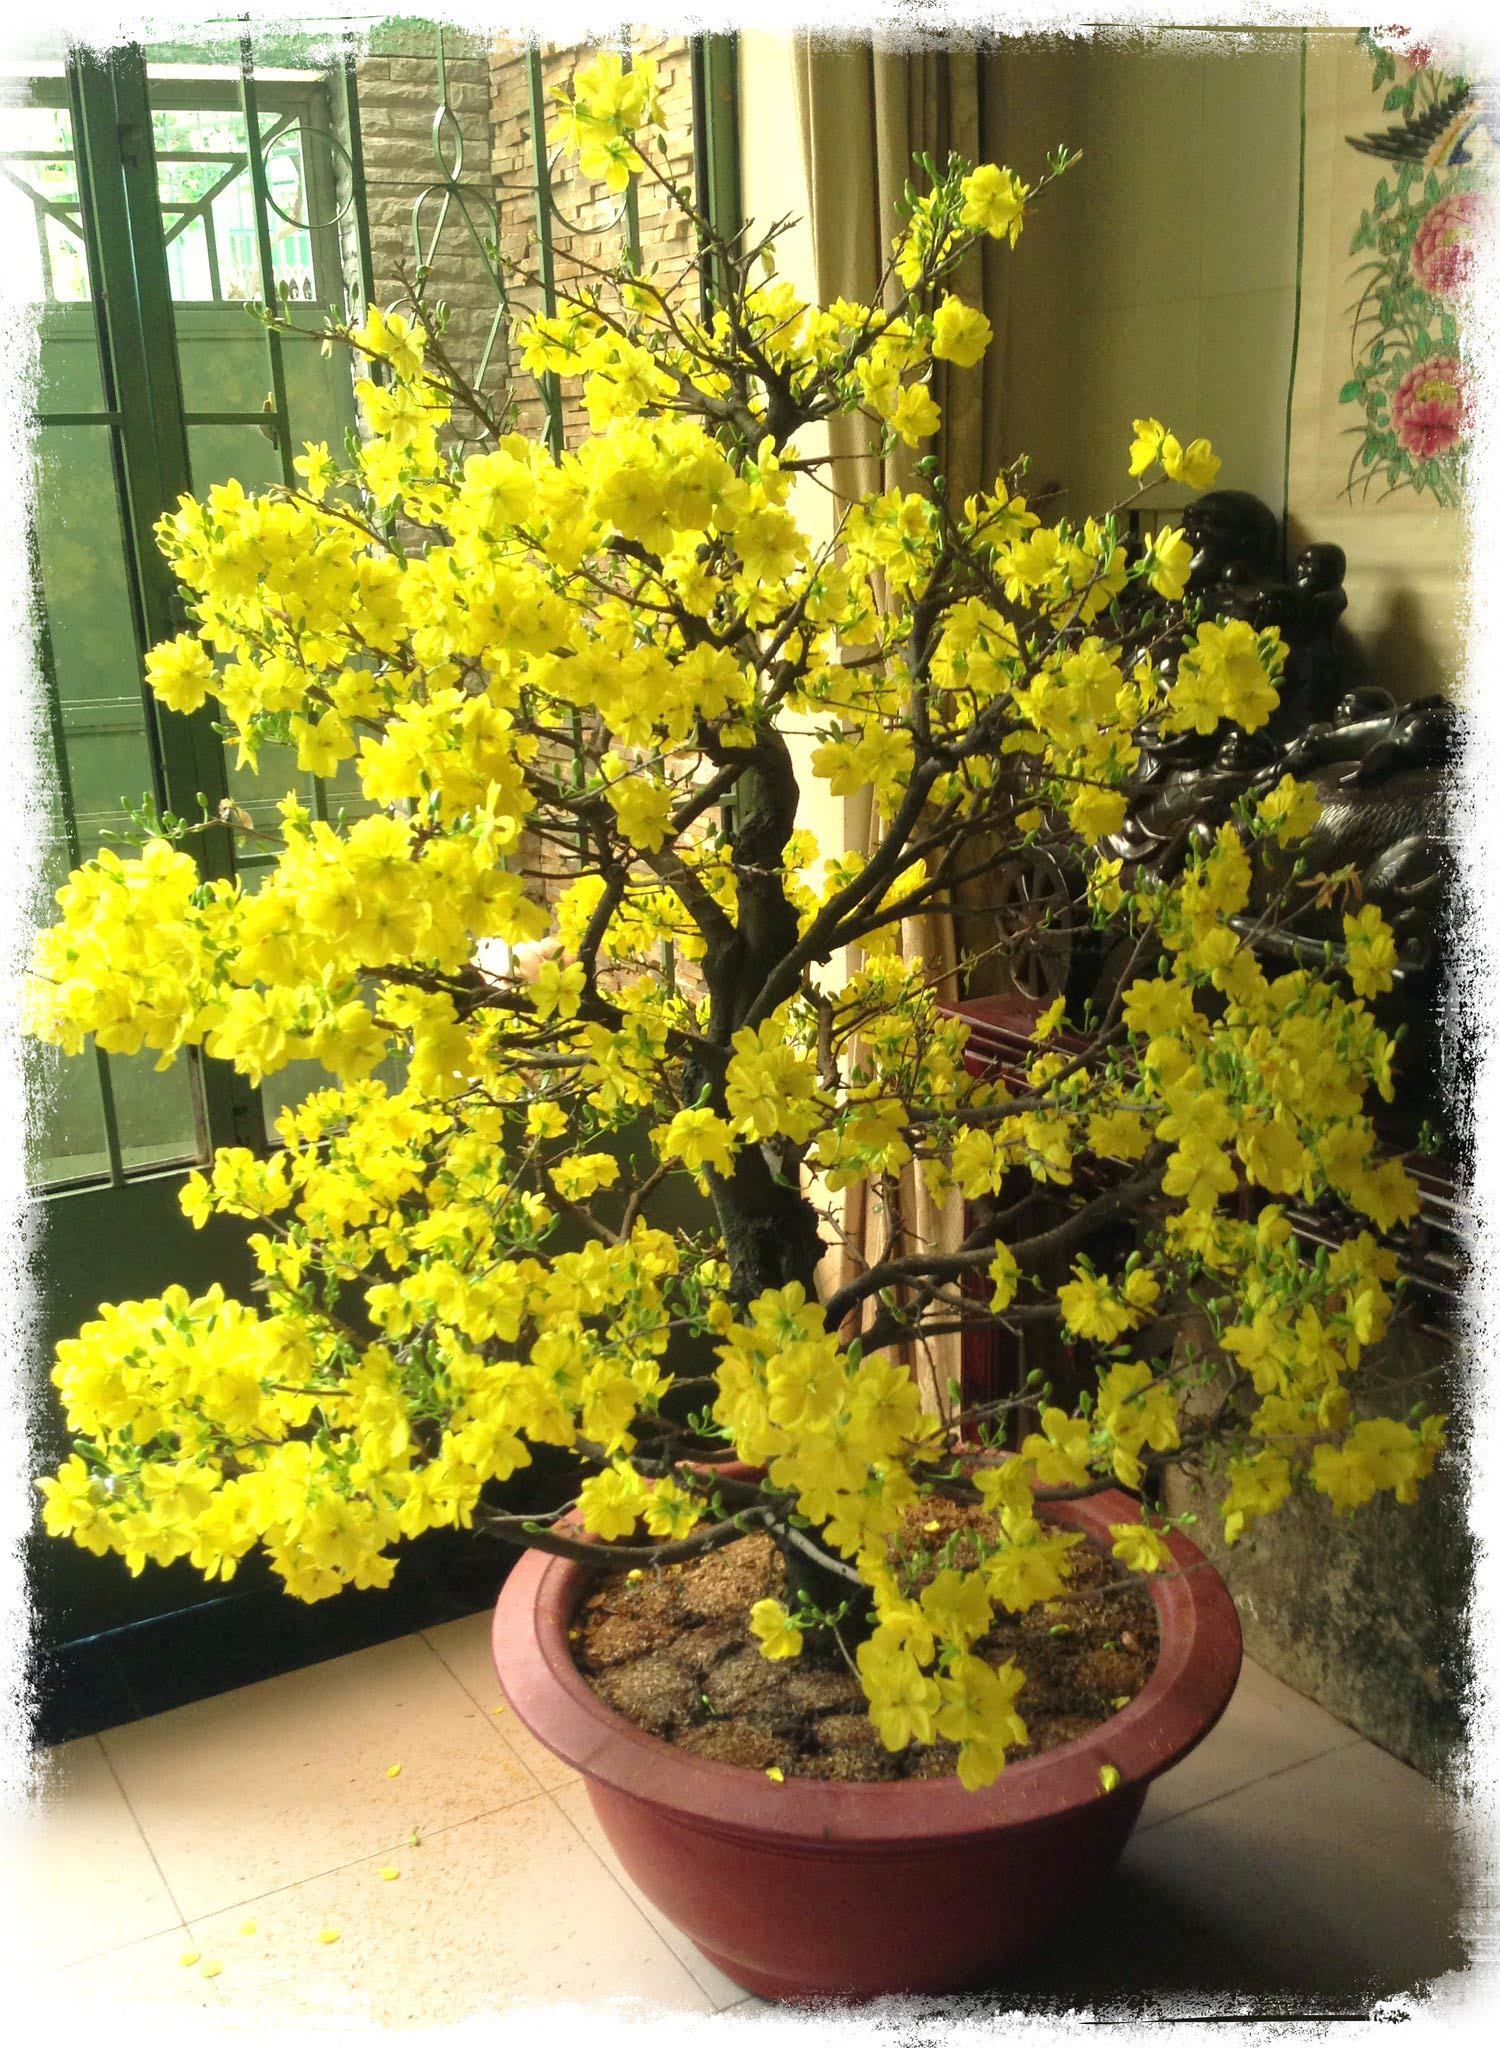 Yellow Apricot Flower is the must have Vietnamese flowers in spring.